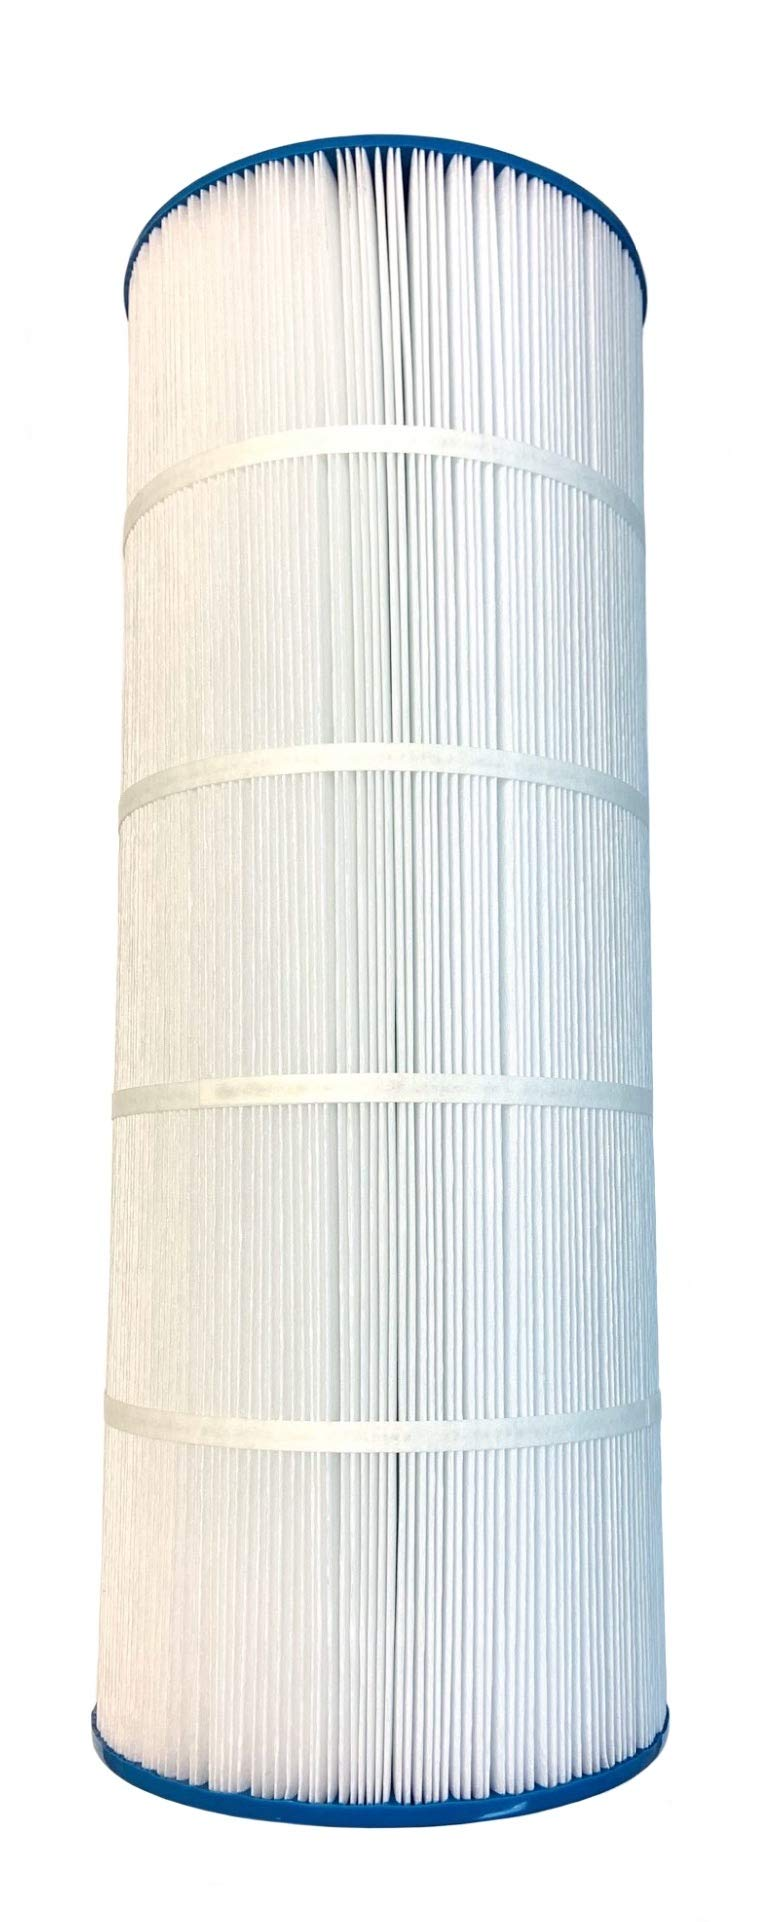 Southeastern Pool Filter Cartridge Replacement for Star-Clear Plus C-1200 C-8412 PA120